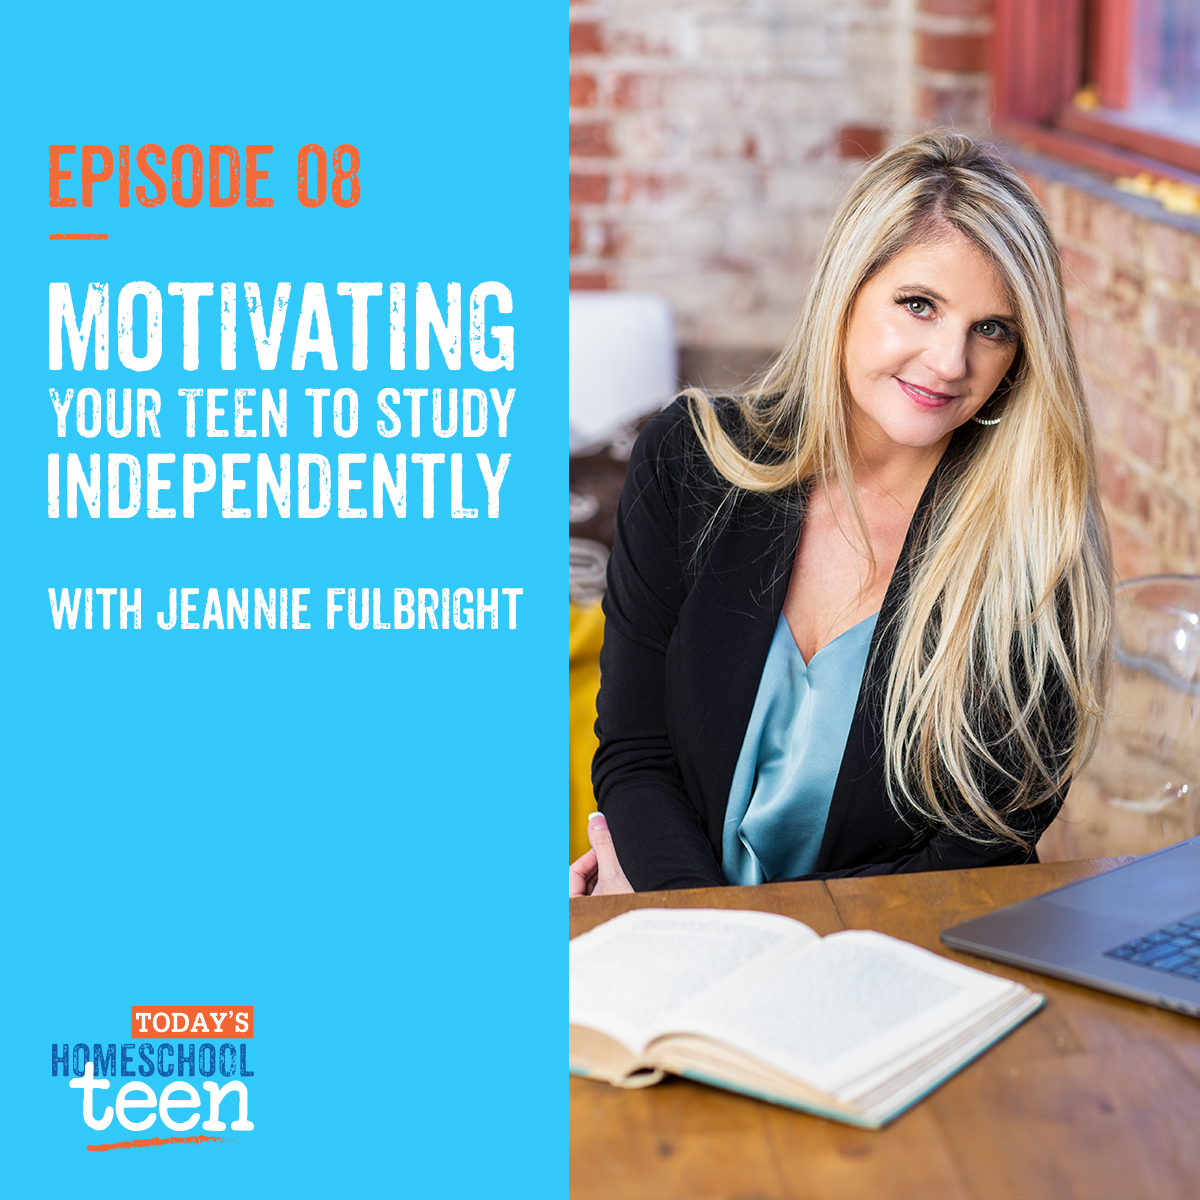 Motivating Your Teens to Study Independently with Jeannie Fulbright